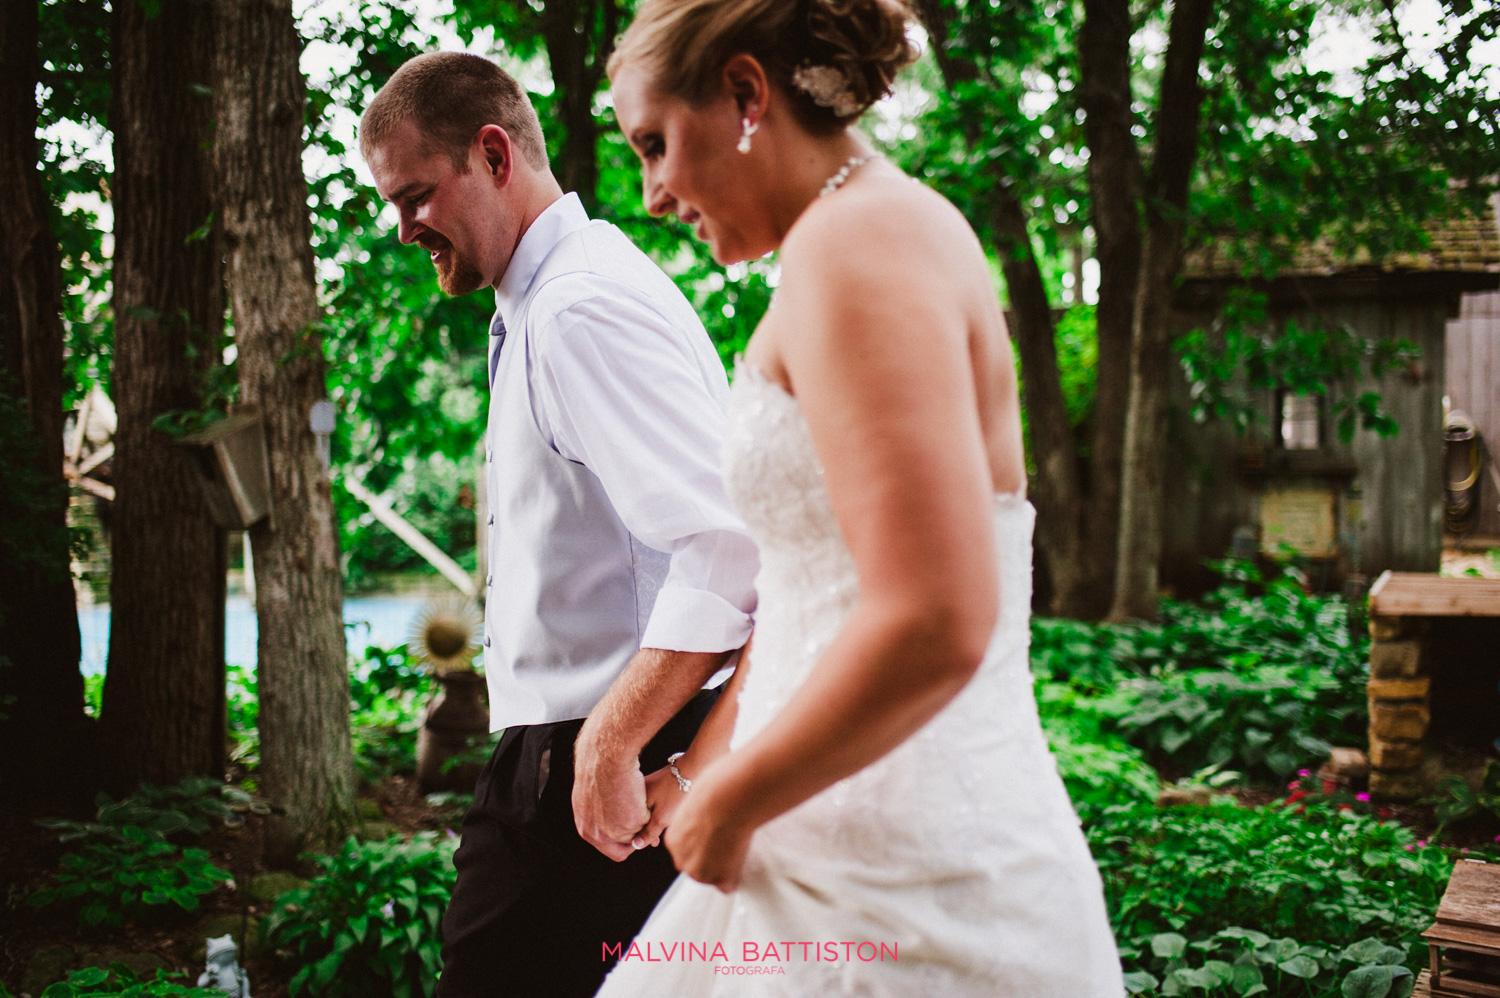 minnesota wedding photographer 022.JPG